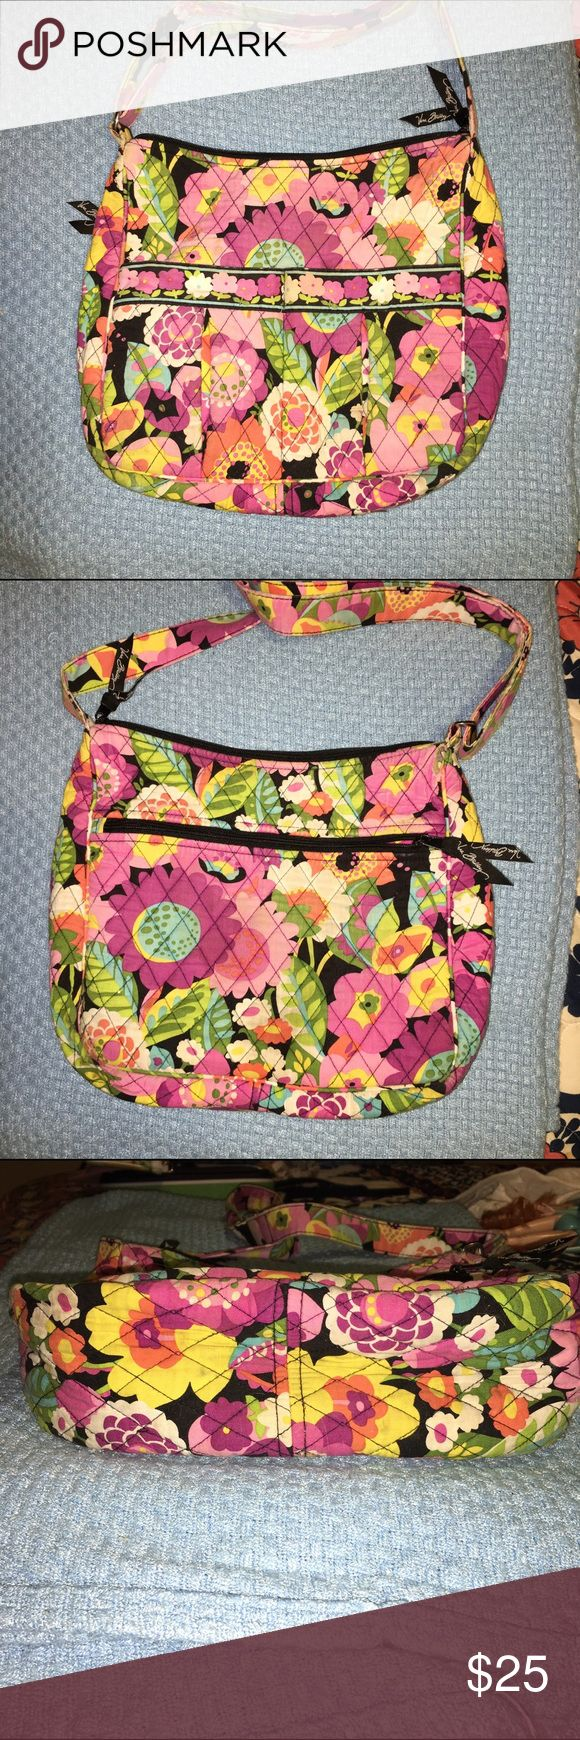 Vera Bradley Moms day out crossbody/diaper bag Moms day out bag in Va Va Bloom Well loved. Definitely some fading, no fraying. Missing the cardboard piece that gives it a hard bottom. Some dirt stains on bottom (see photos) otherwise good condition with a lot of life left. Vera Bradley Bags